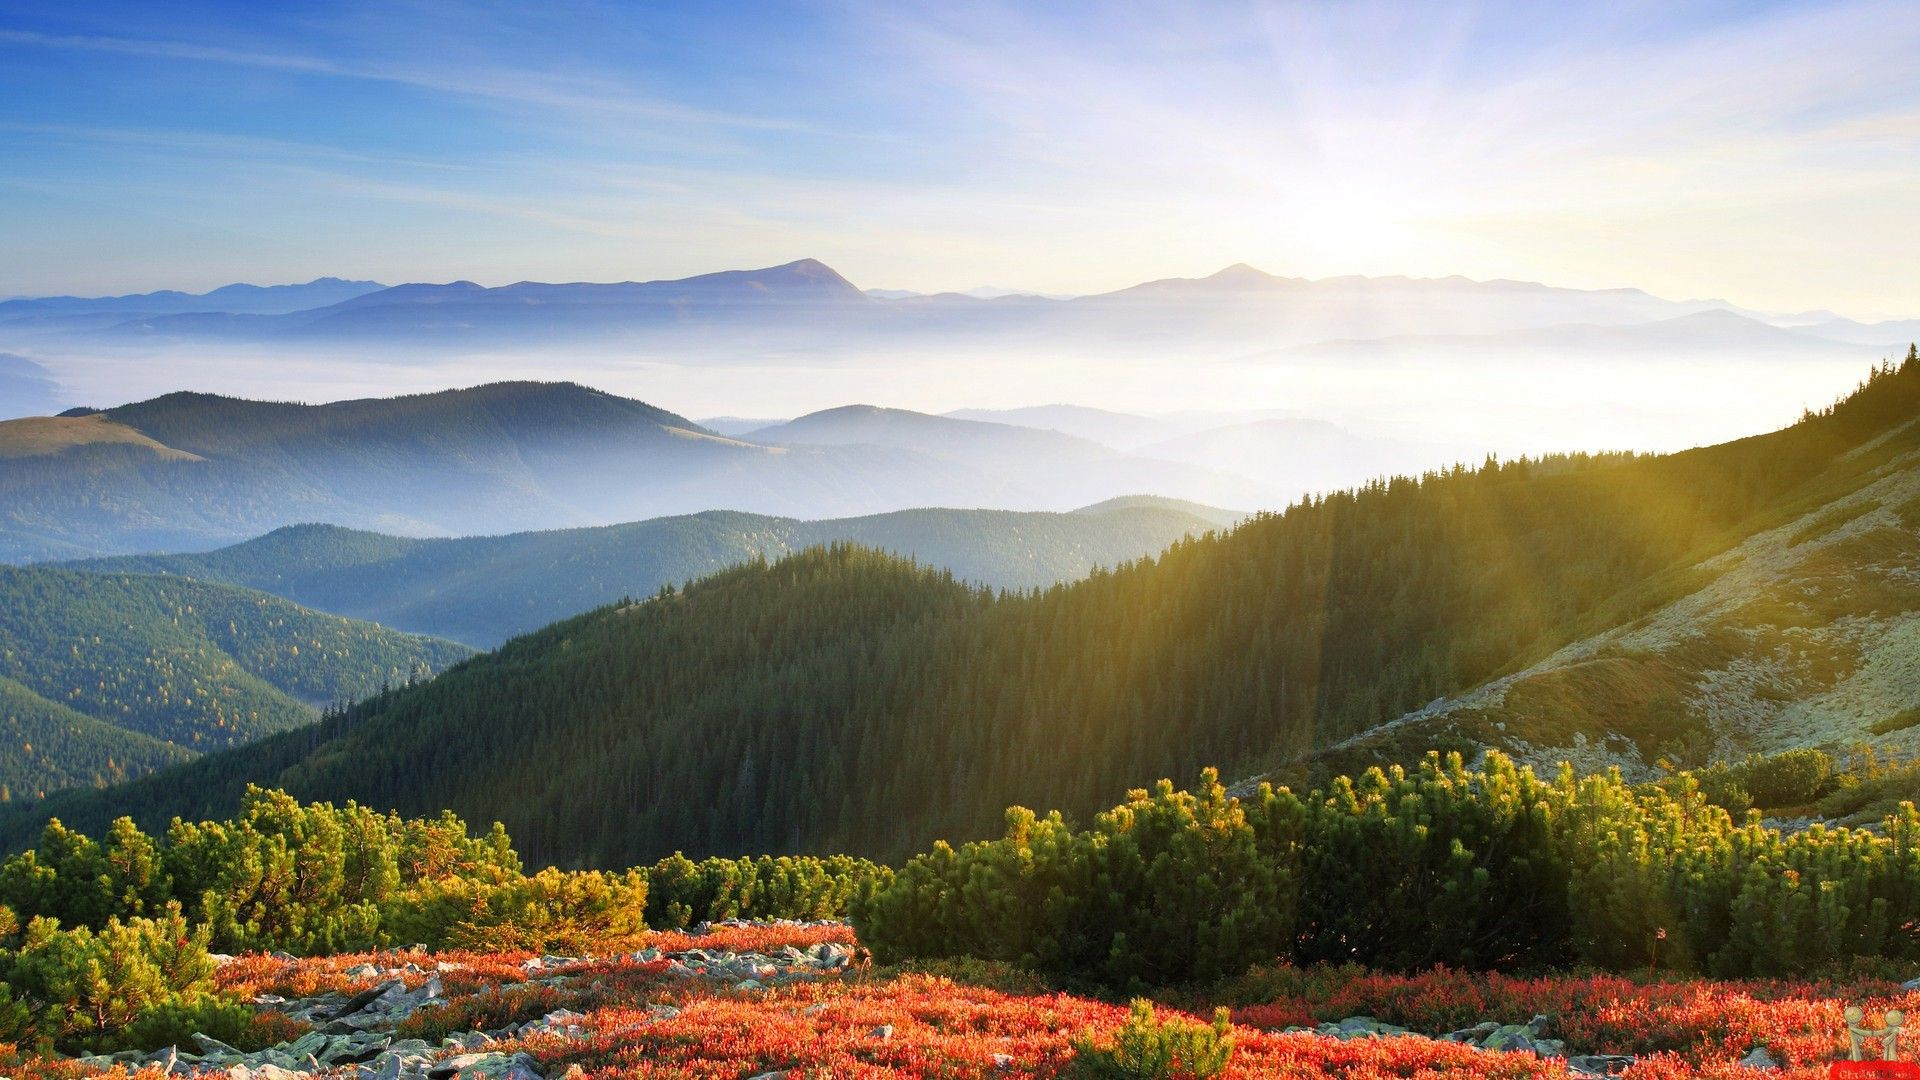 Smokey Mountain Beautiful Hd Wallpapers Jpg 1920 1080 Landscape Pictures Sunrise Wallpaper Mountain Pictures